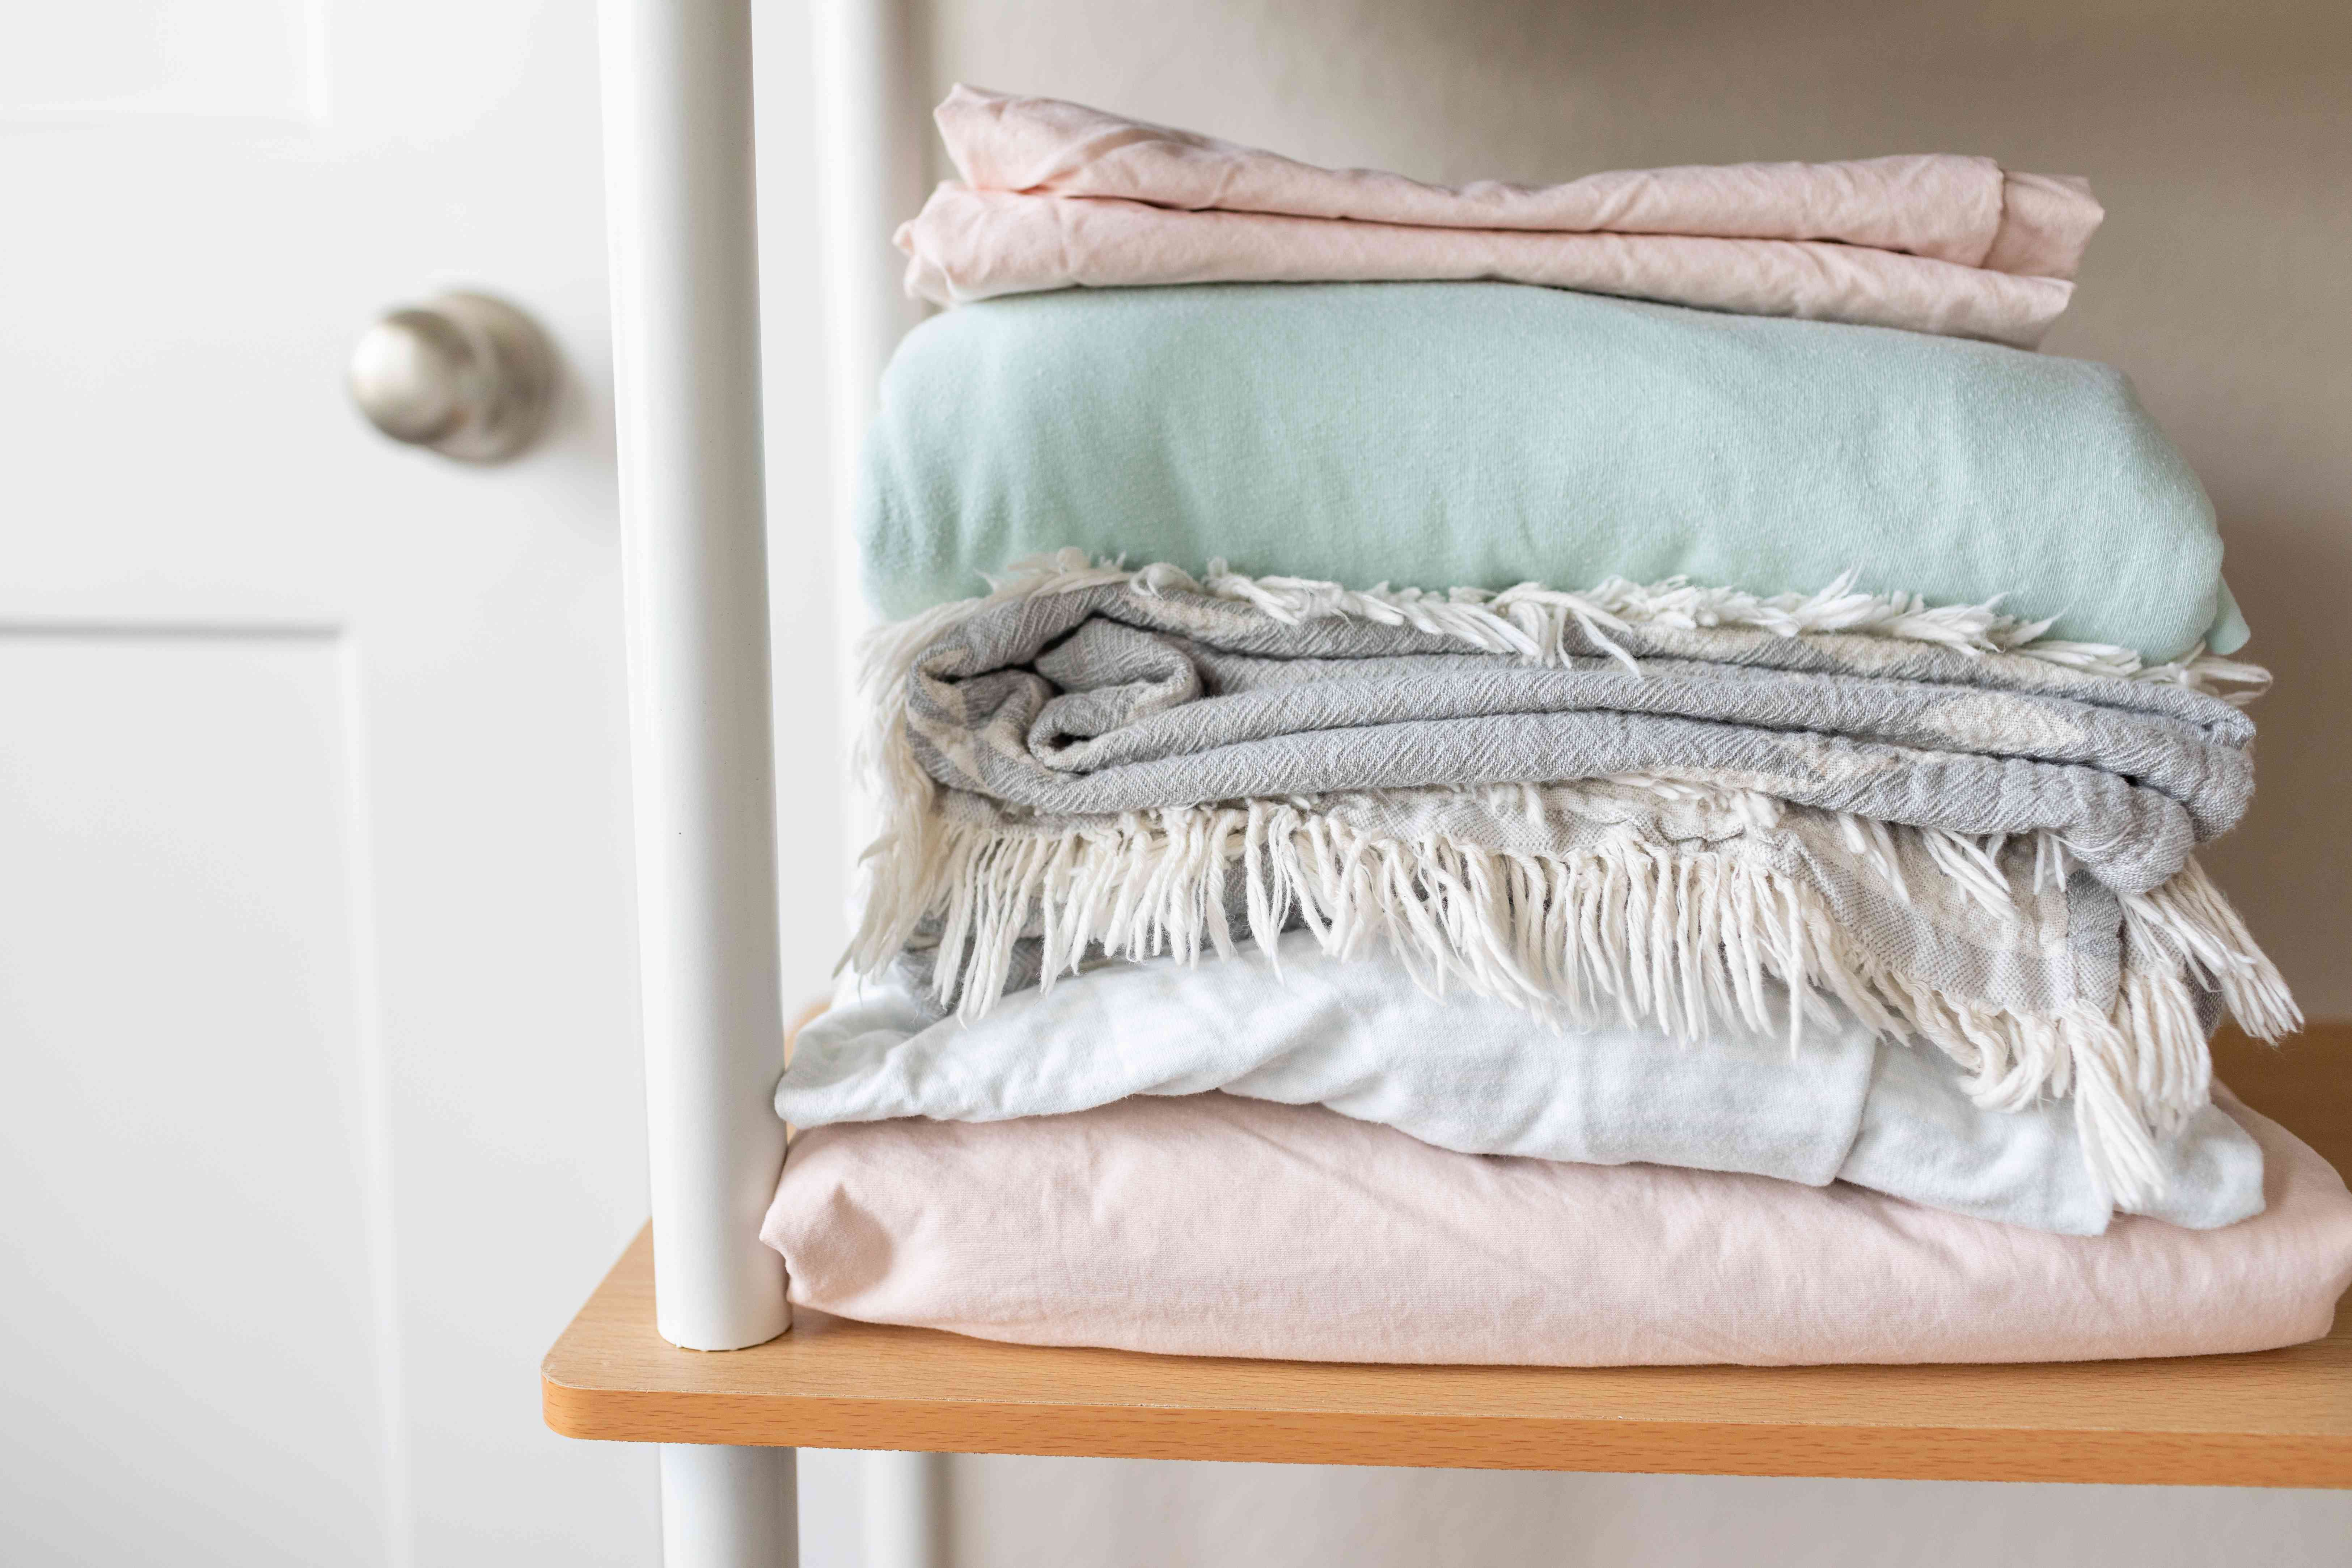 neatly folded pastel bed sheets sit on open storage rack next to white door